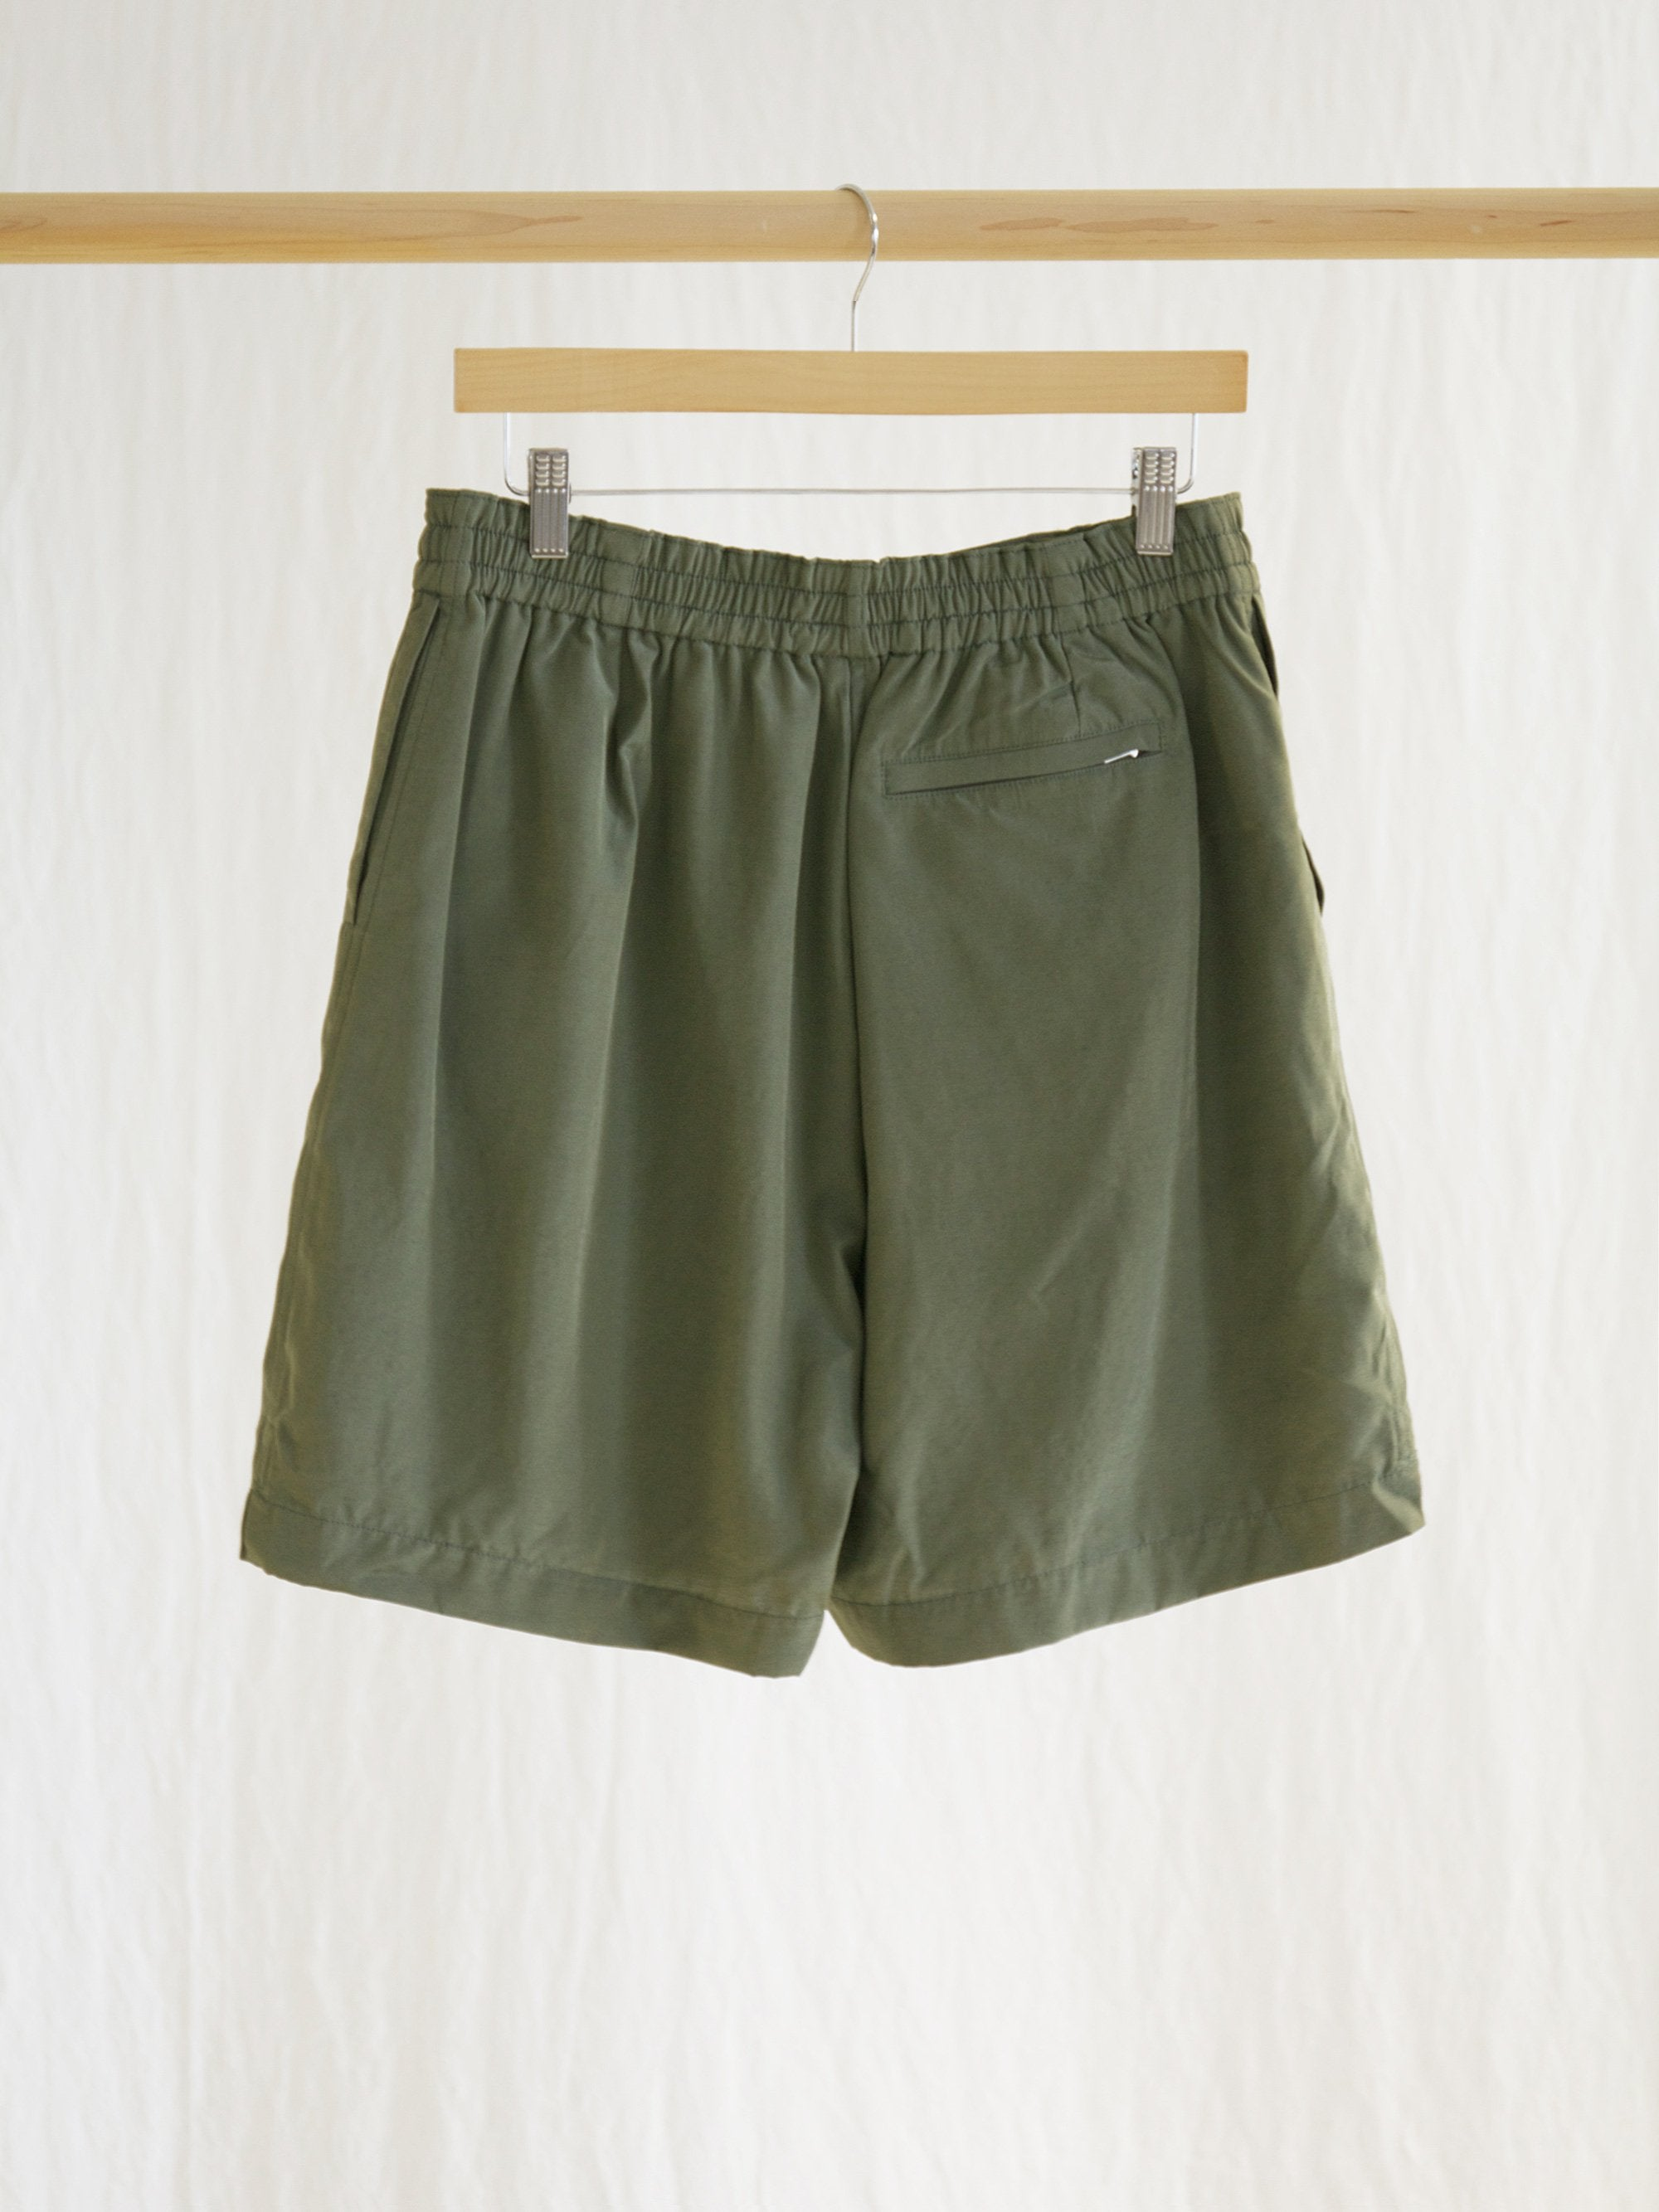 Namu Shop - Kaptain Sunshine Trainer Easy Shorts